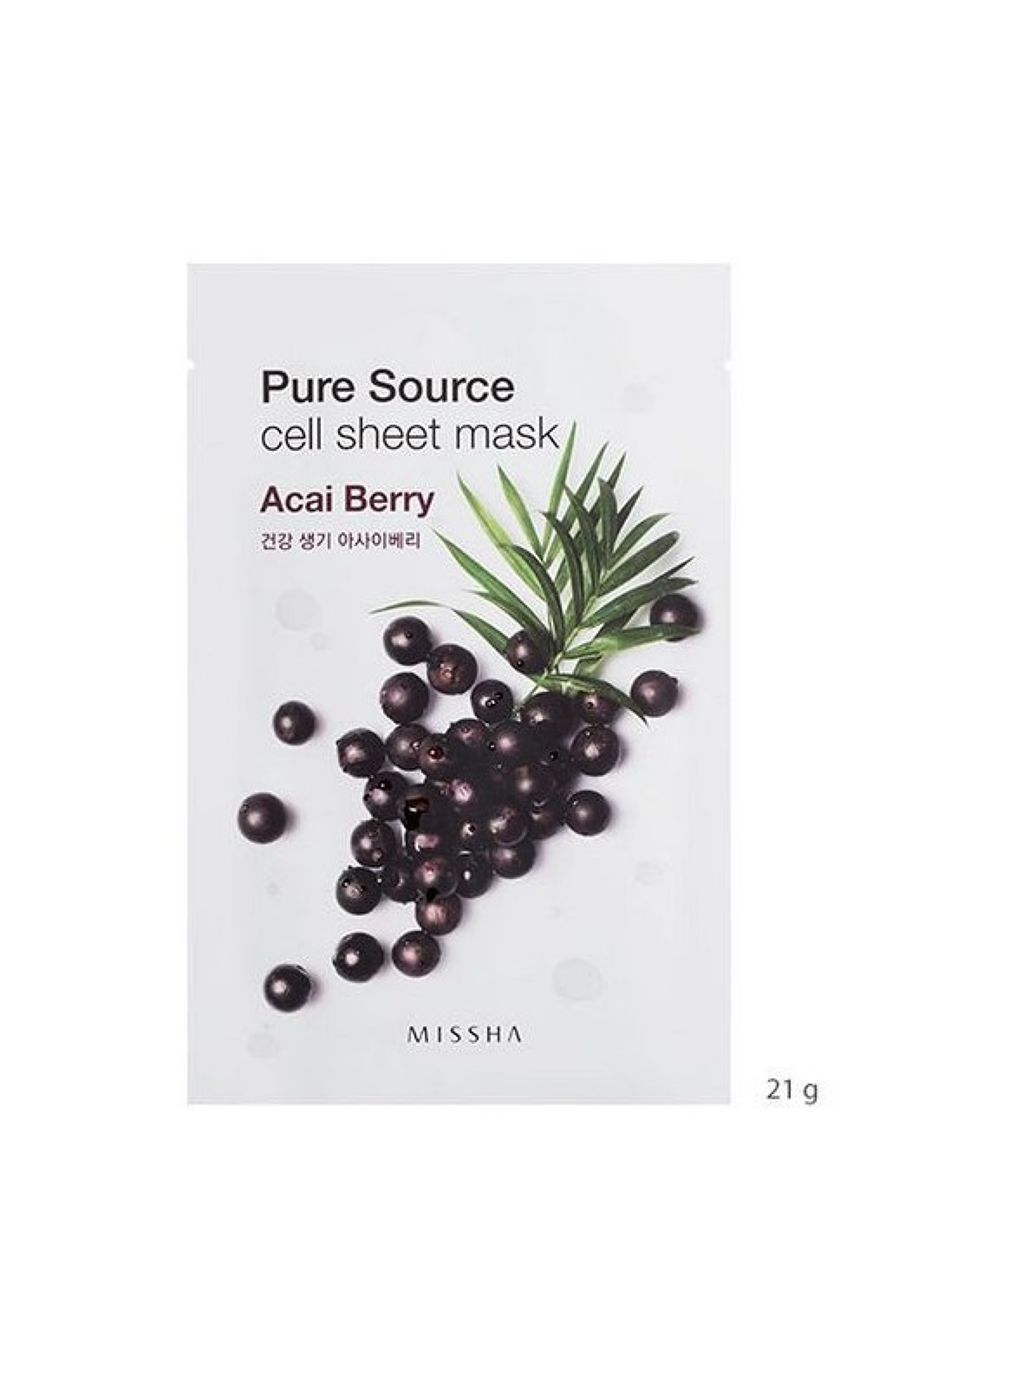 PURE SOURCE CELL SHEET MASK (ACAI BERRY) - 05b37-pure-source-cell-sheet-mask-acai-berry.jpg